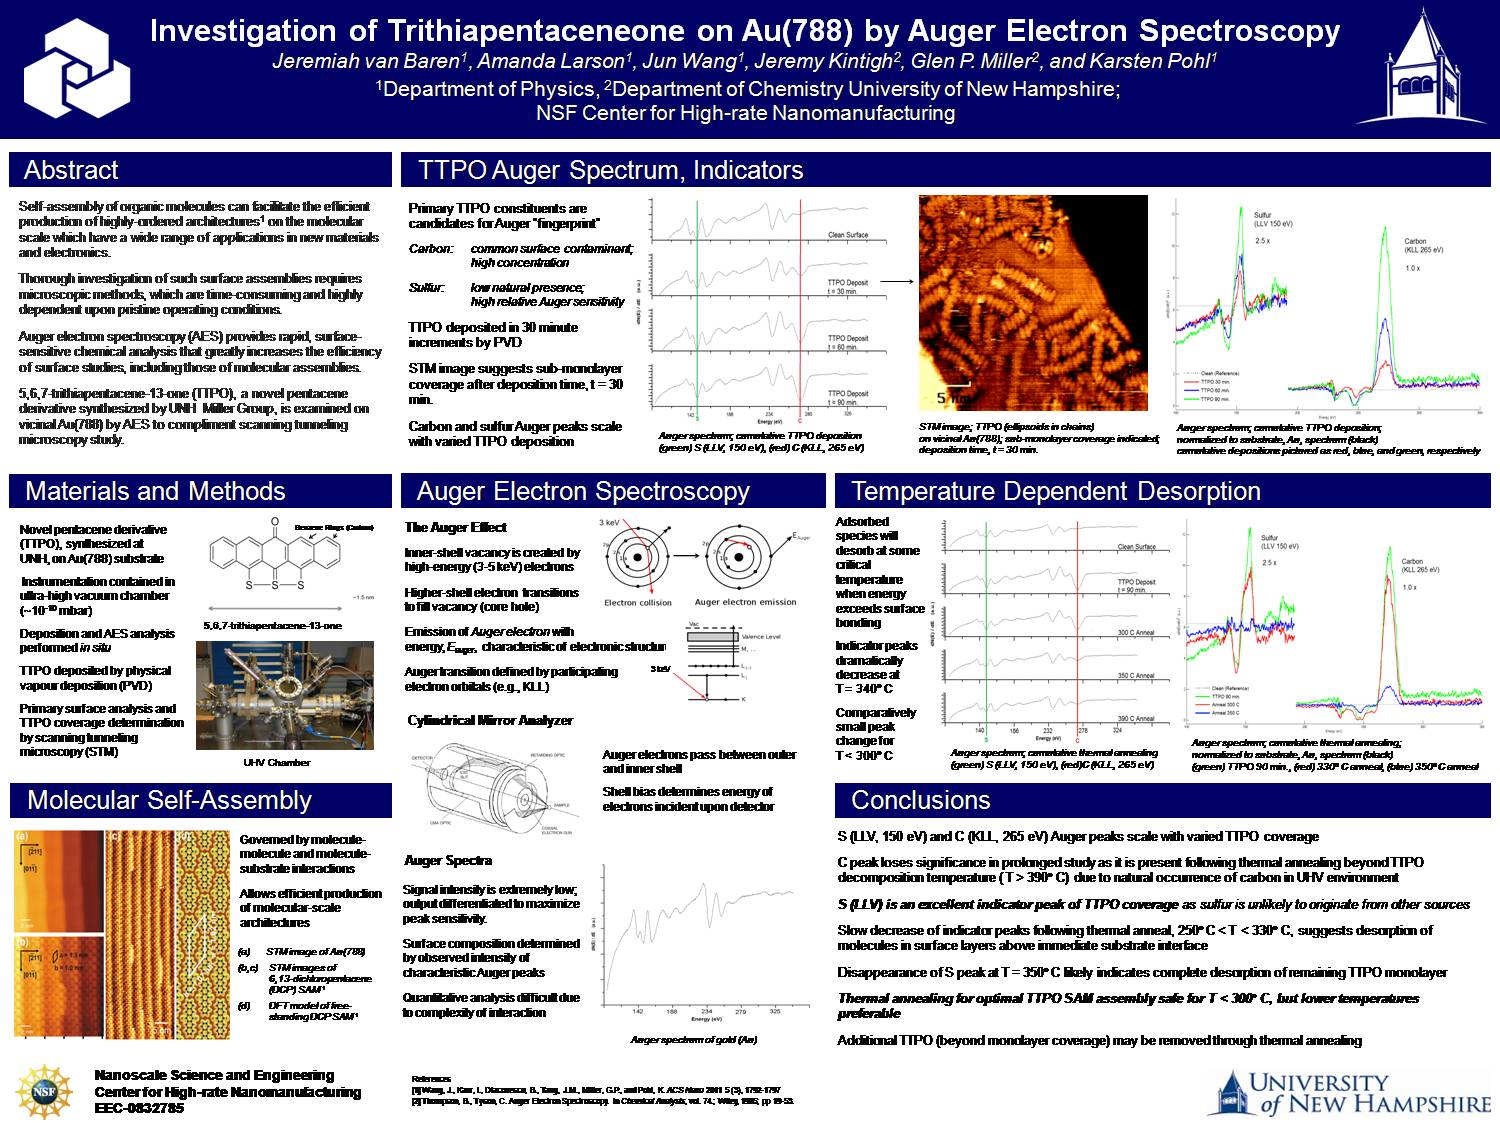 Investigation Of Trithiapentaceneone On Au(788) By Auger Electron Spectroscopy by jsj55